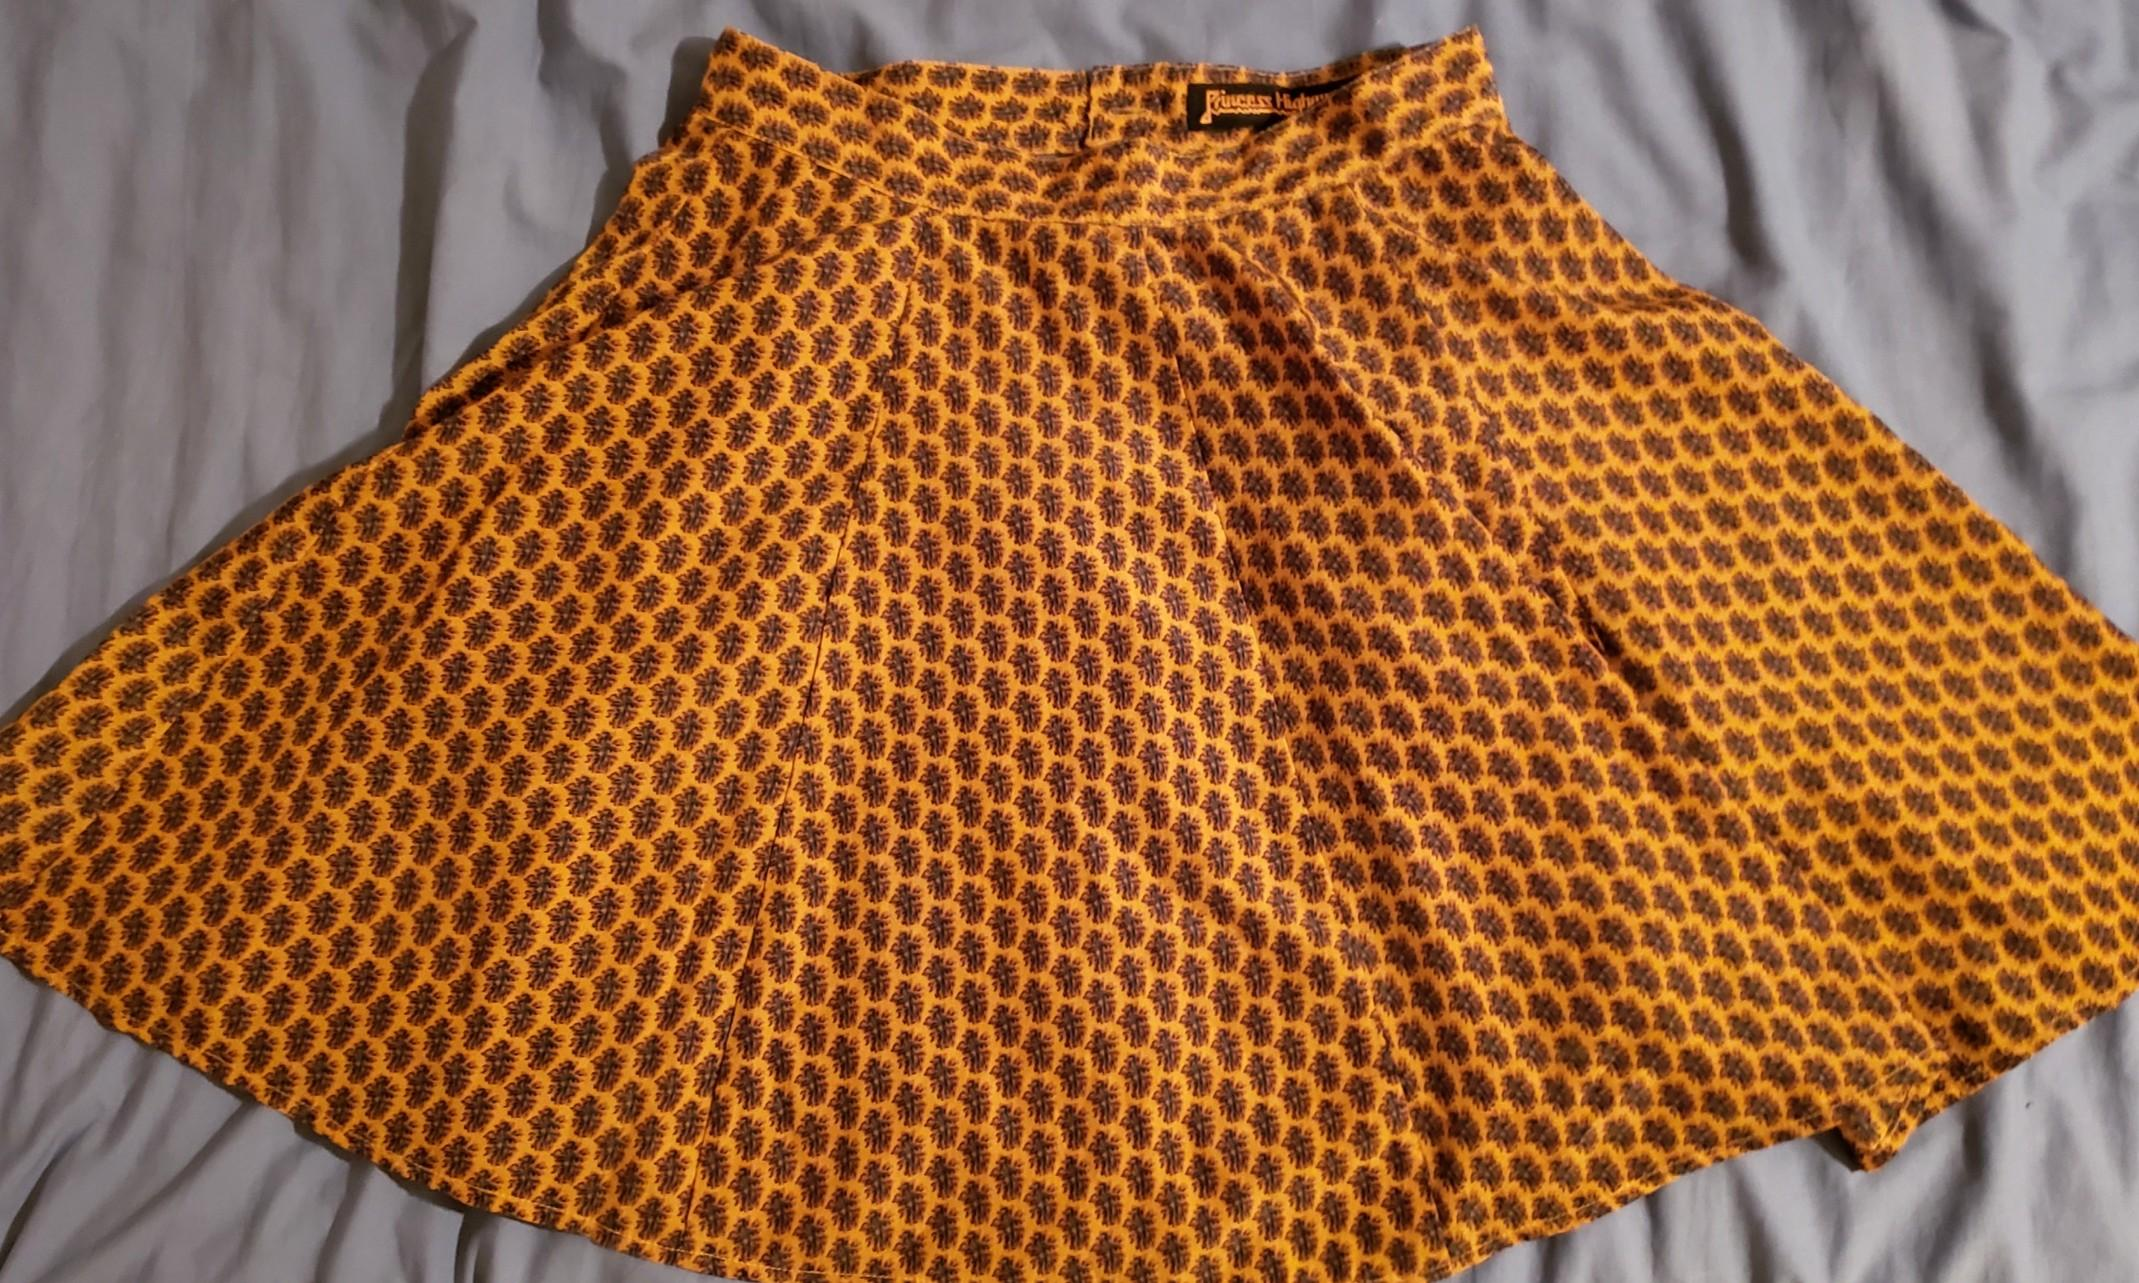 All for $20 Vintage Branded Skirts -Alice in the Eve & Princess Highway